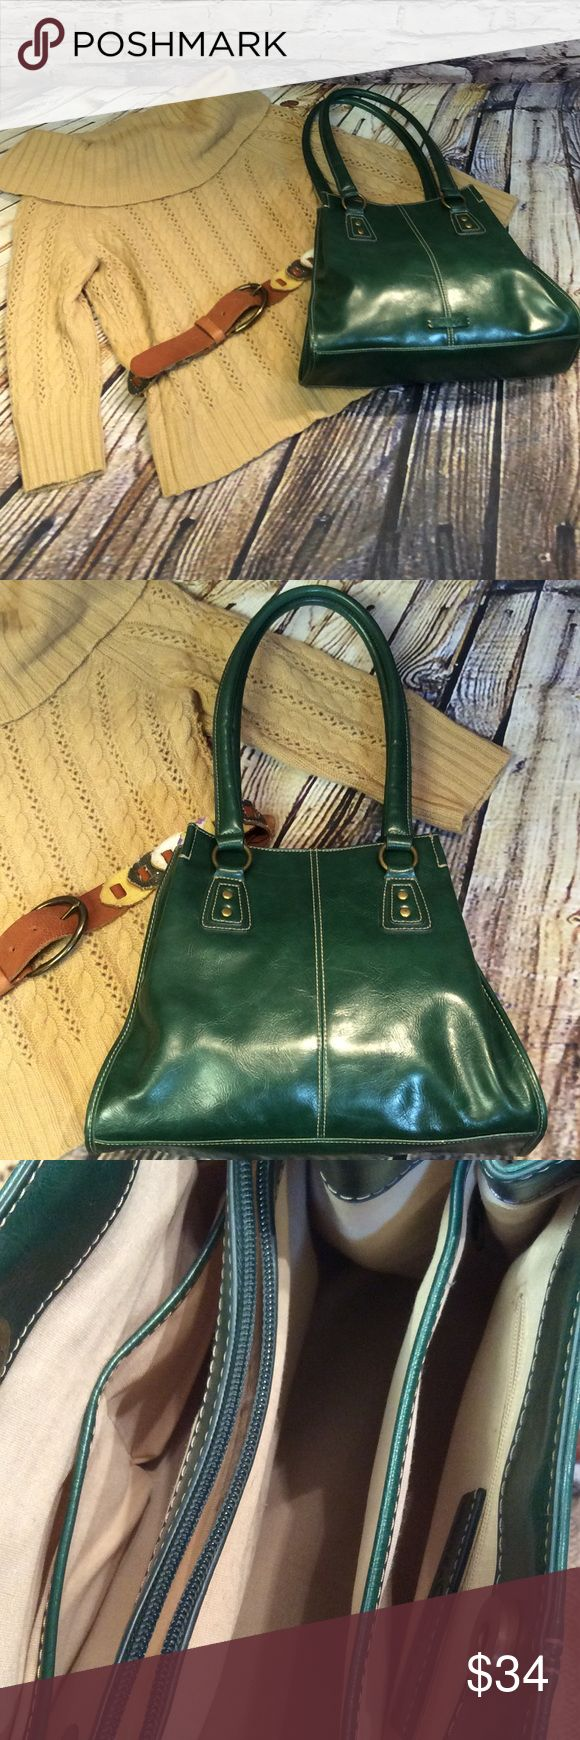 """NINE & CO DEEP GREEN SHOULDER BAG This is a beautiful, sturdy well kept BAG with lots of interior pockets to keeps you organized. Made of a high quality PV and very lightly used condition. Perfect fall and winter BAG to meet all your needs. Approximately 13x10x3.5 with a 10"""" strap drop Nine & Co Bags Shoulder Bags"""